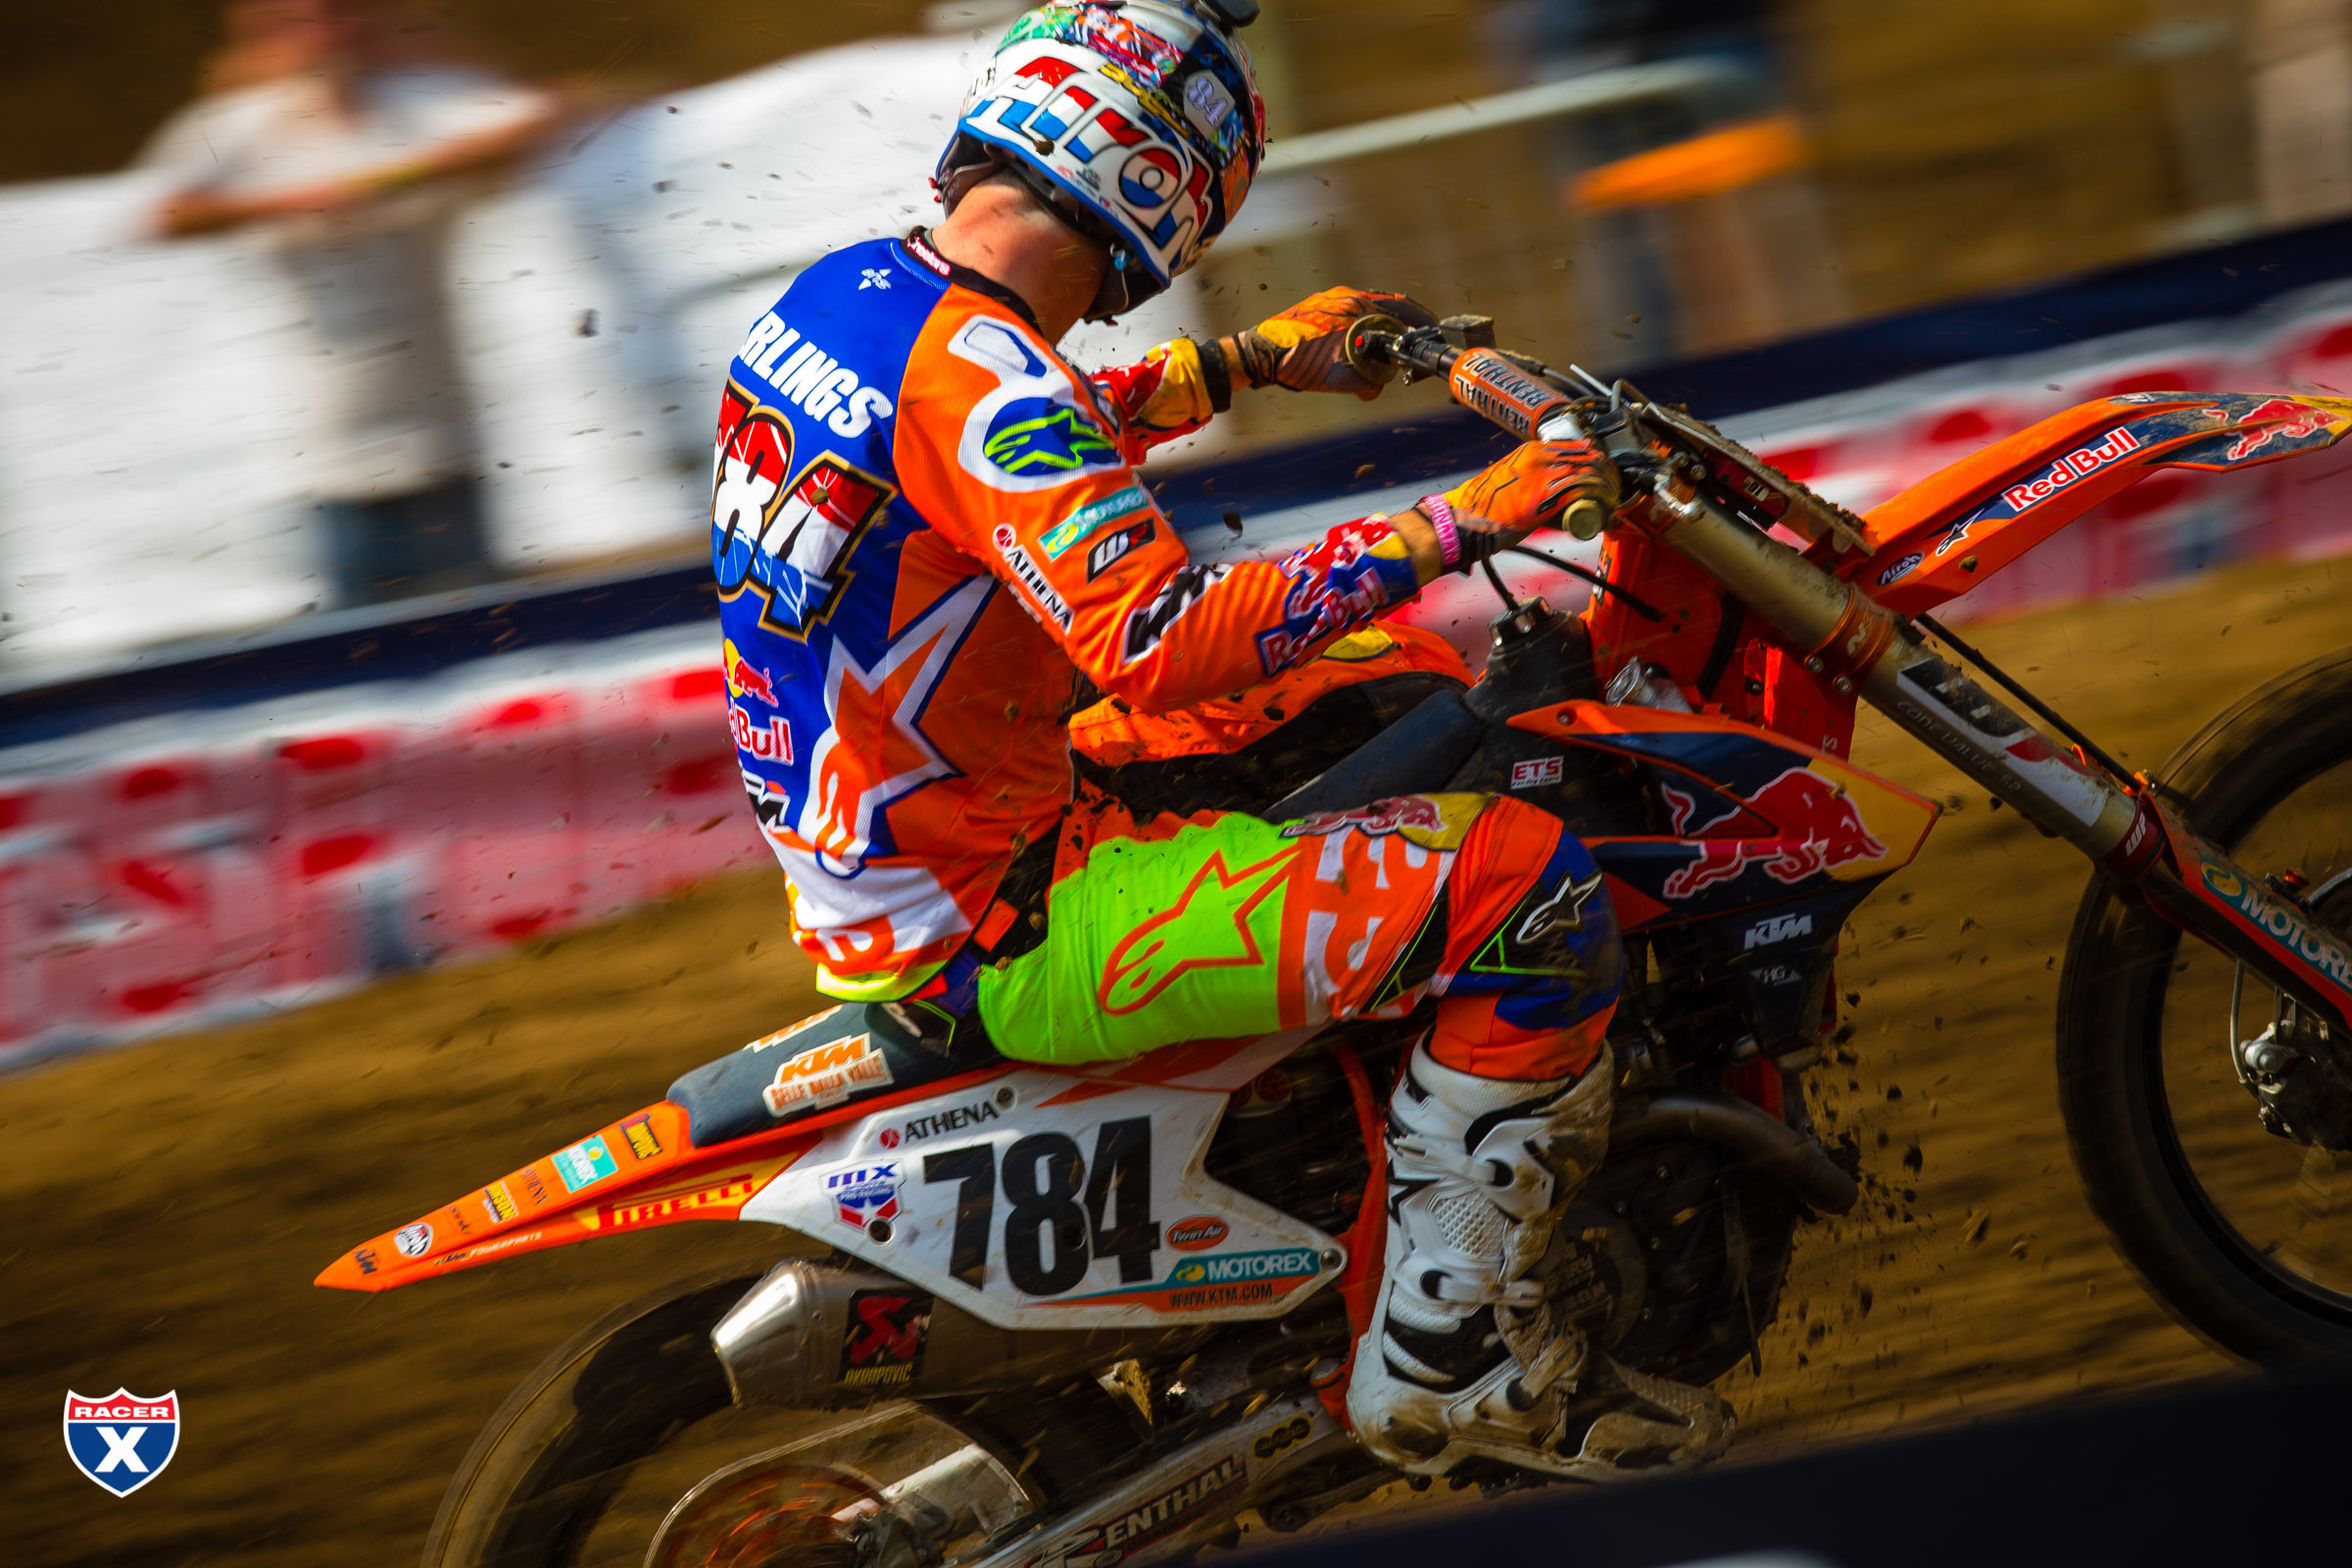 Herlings_MX17_Ironman_JK_1174